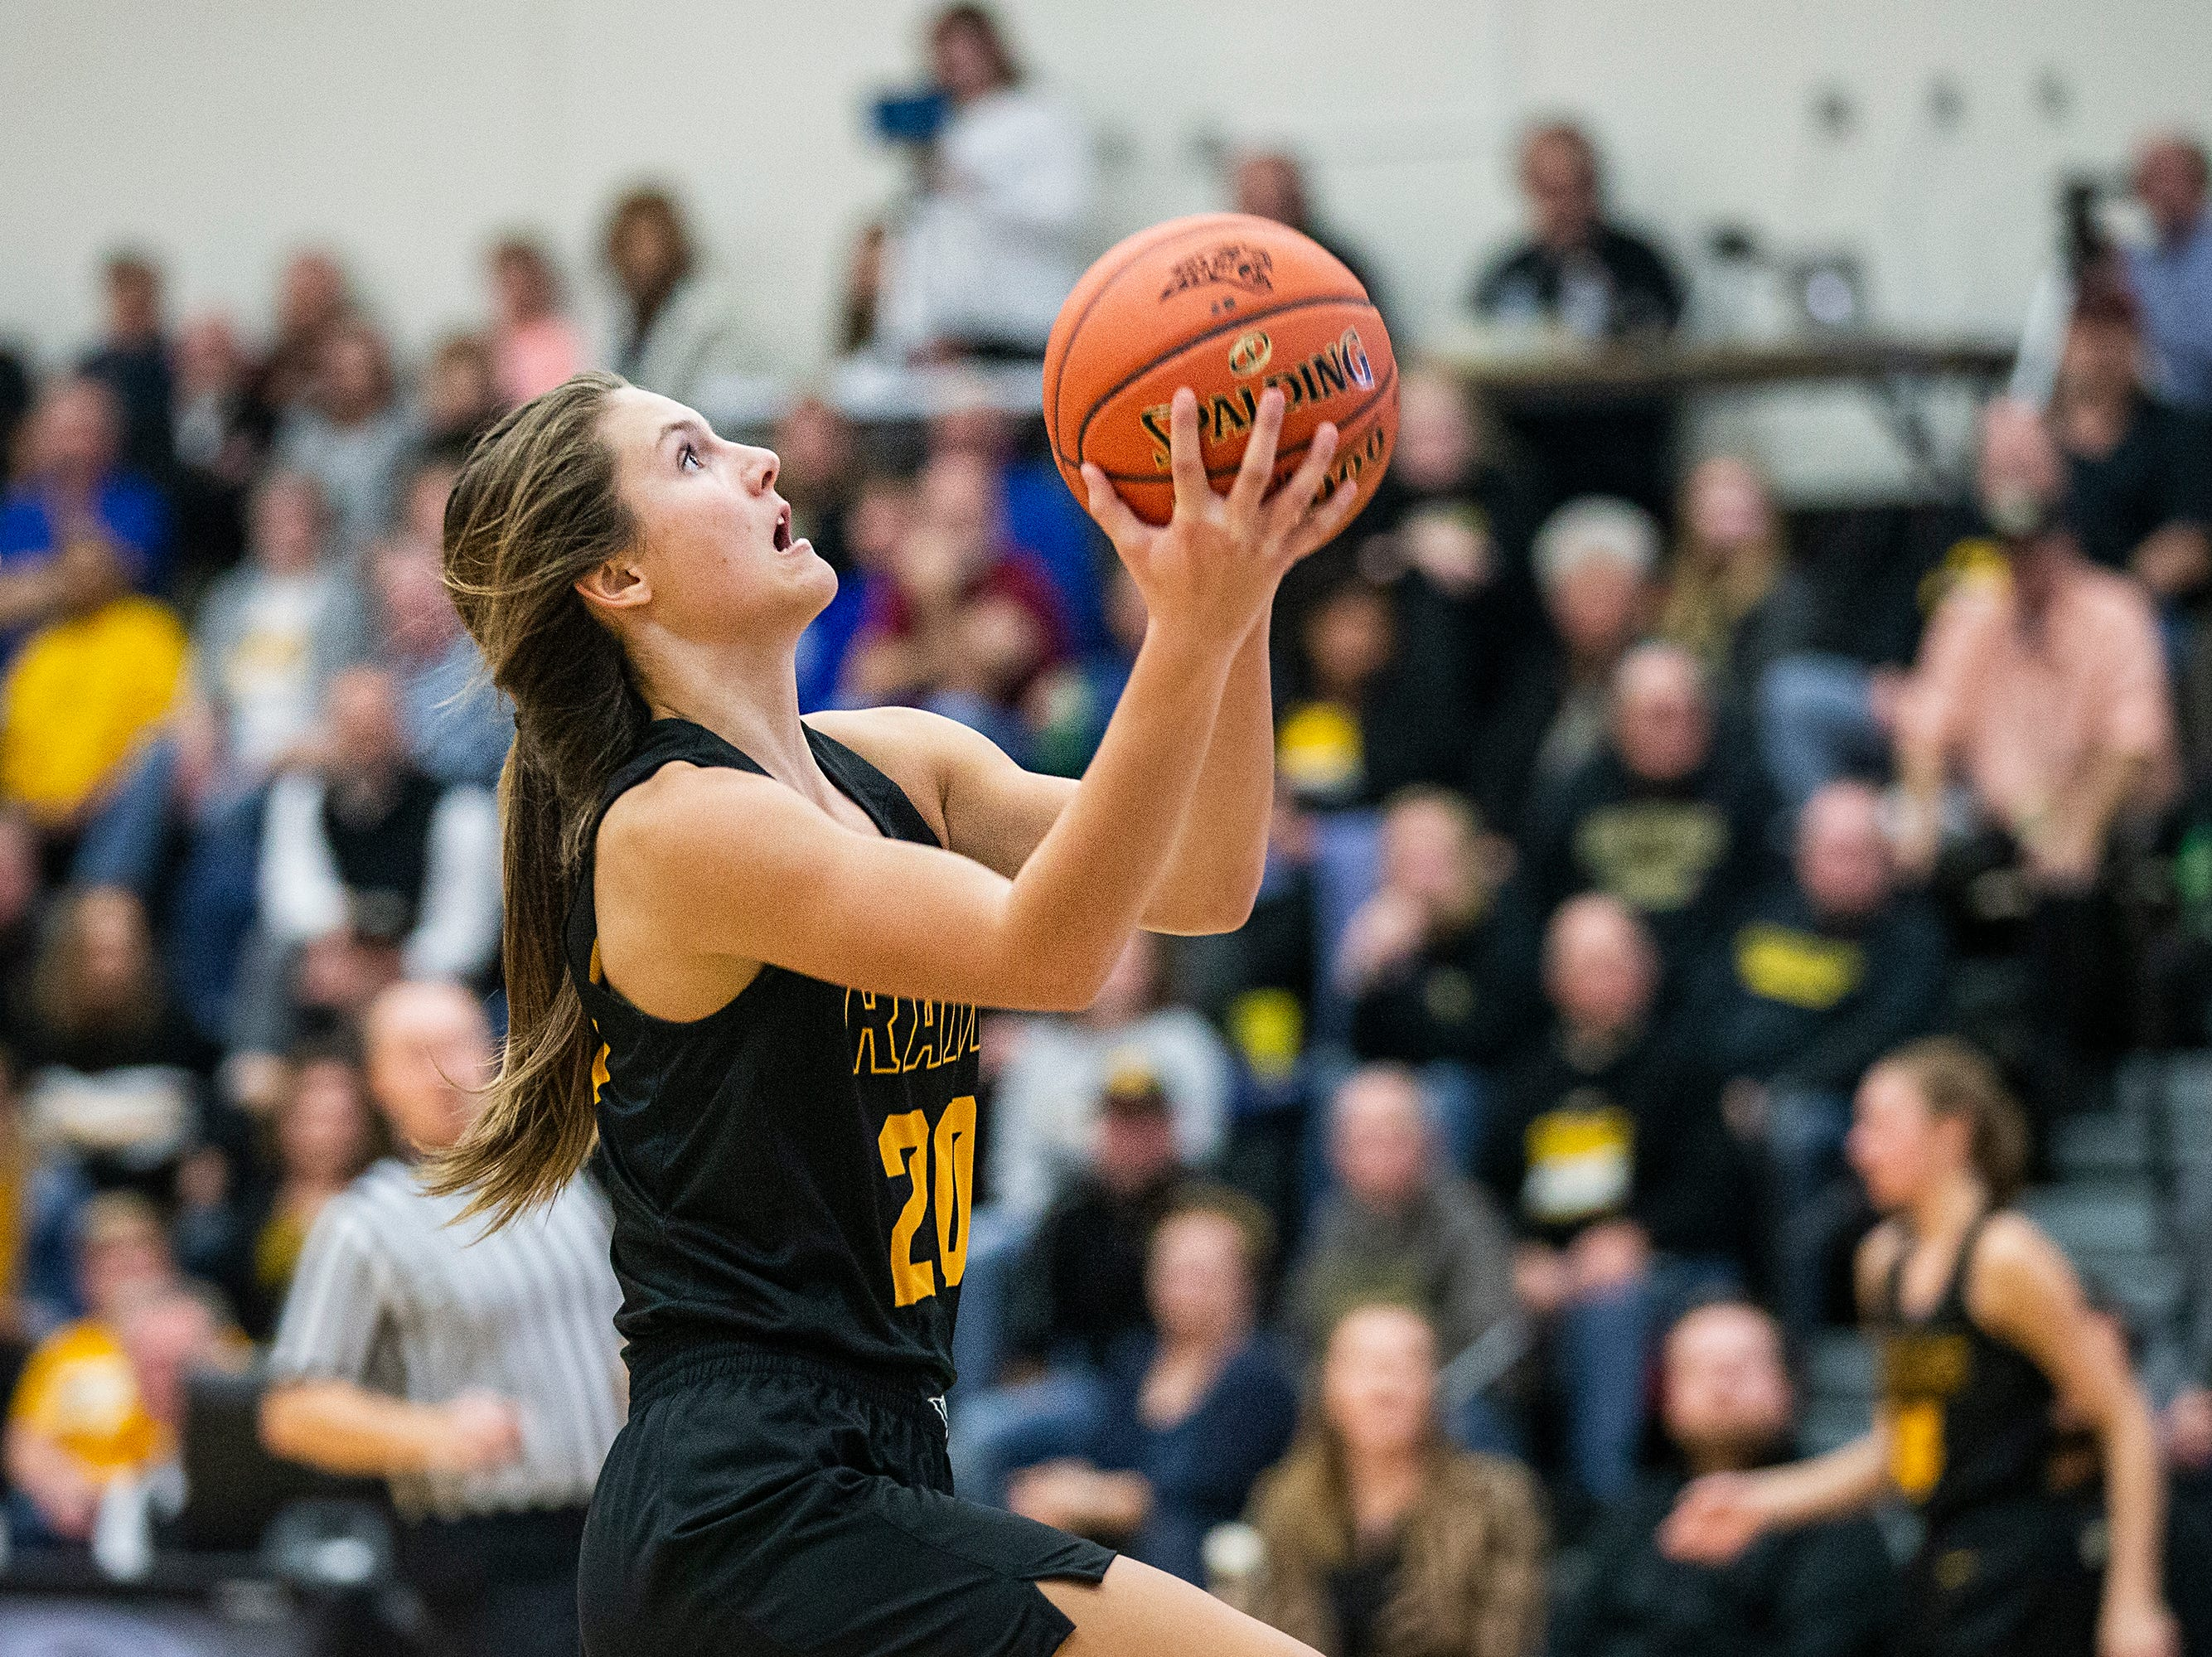 SEP's Sami Albertson drives to the hoop during the Southeast Polk vs. Ankeny Centennial girls' basketball game on Tuesday, Nov. 27, 2018, at Ankeny Centennial High School.